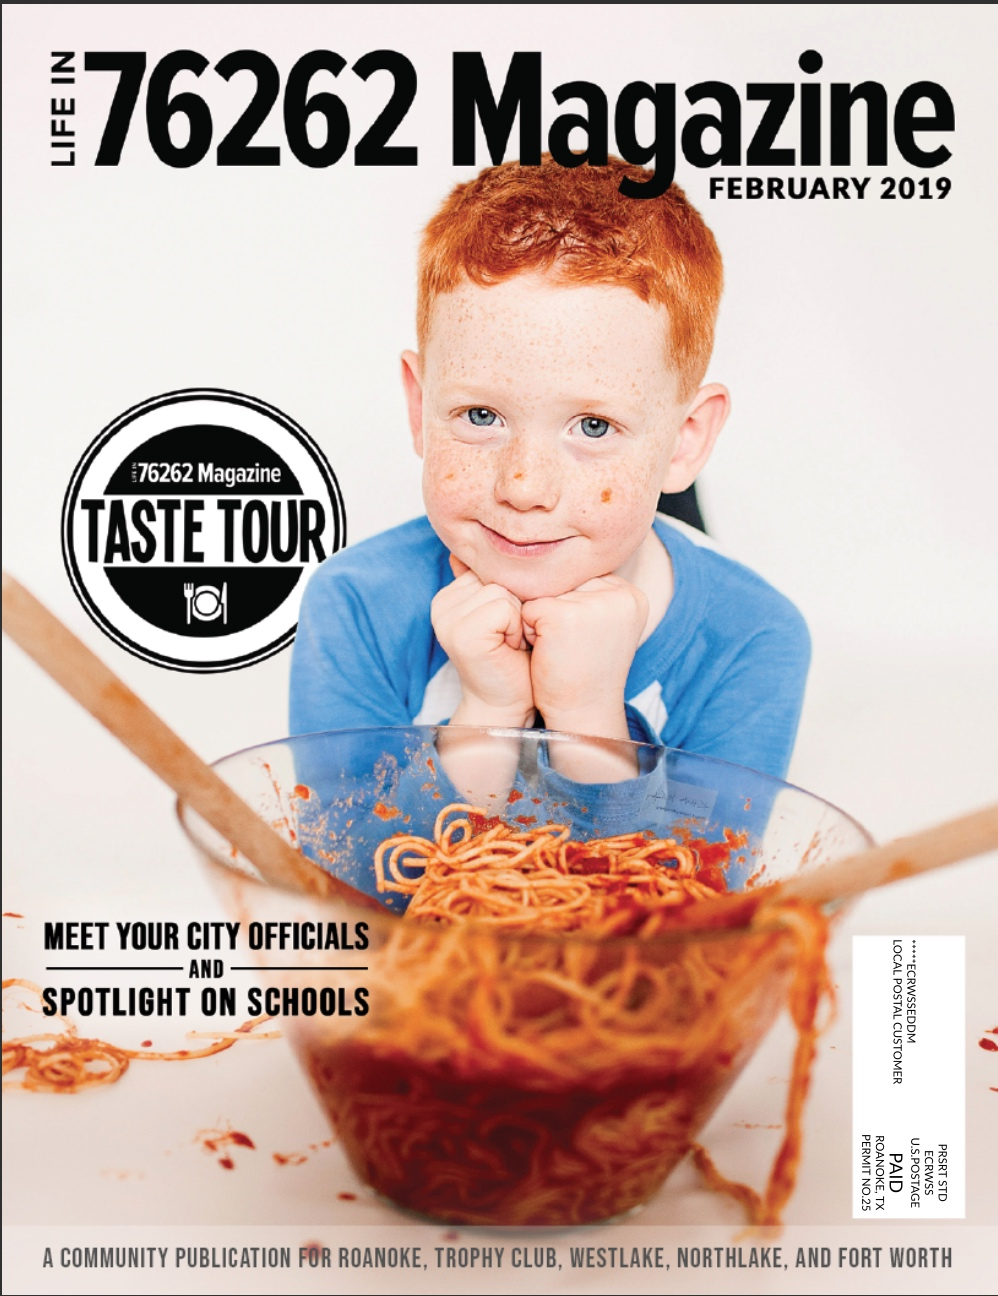 The Taste Tour - Check out some delicious dishes around town, meet some amazing city officials. The preschool comparison chart is a must use when shopping  around and don't forget to see what the caption has to say about he men's restrooms.